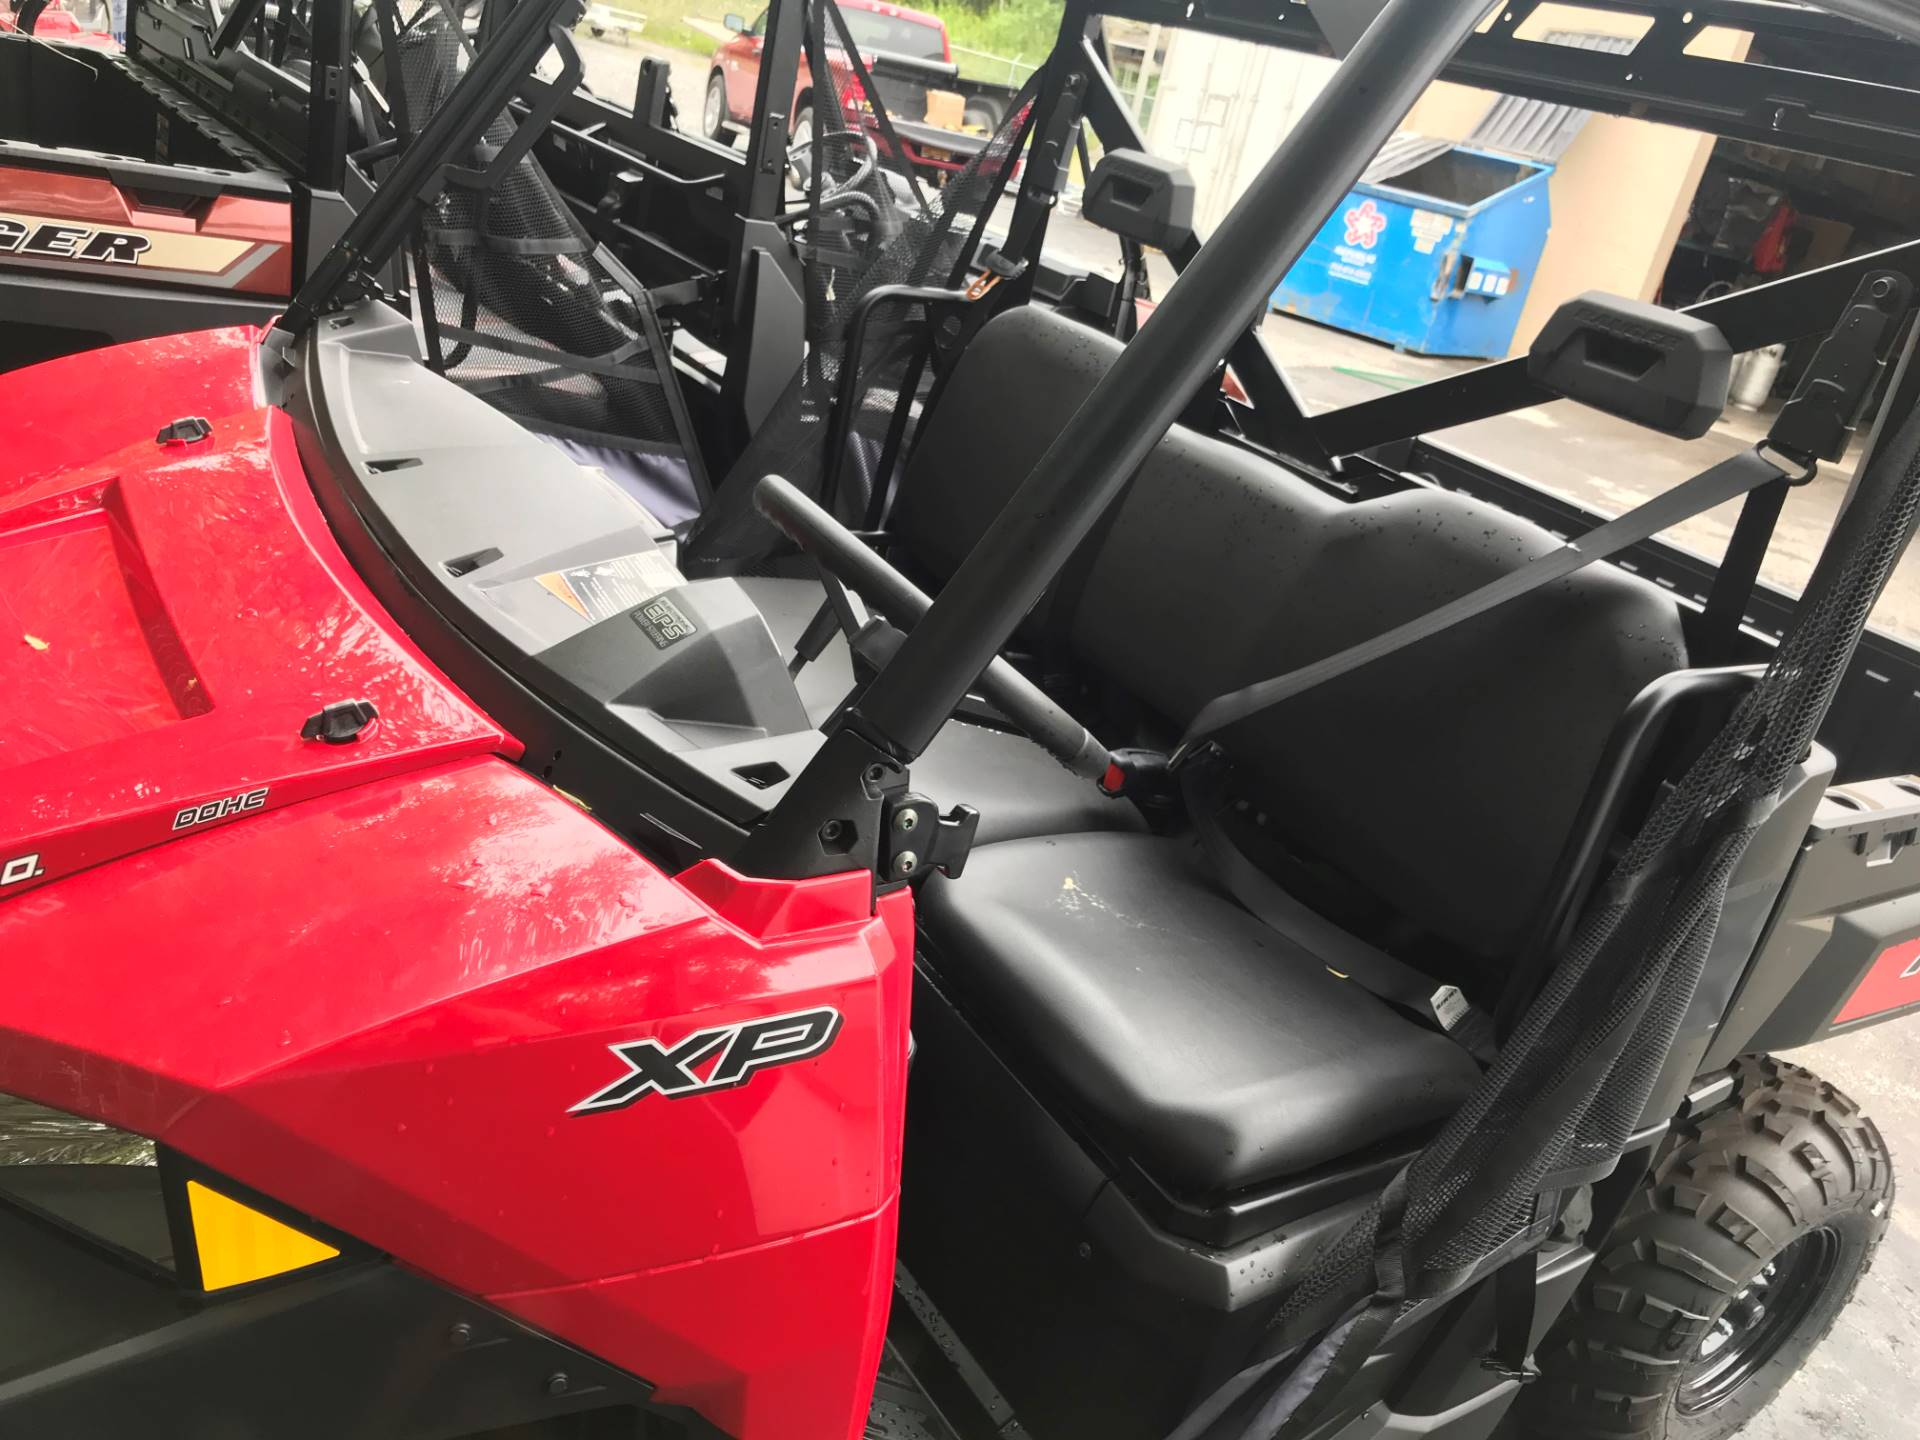 2019 Polaris RGR-19 900XP,EPS,SOLAR RED in Elma, New York - Photo 2